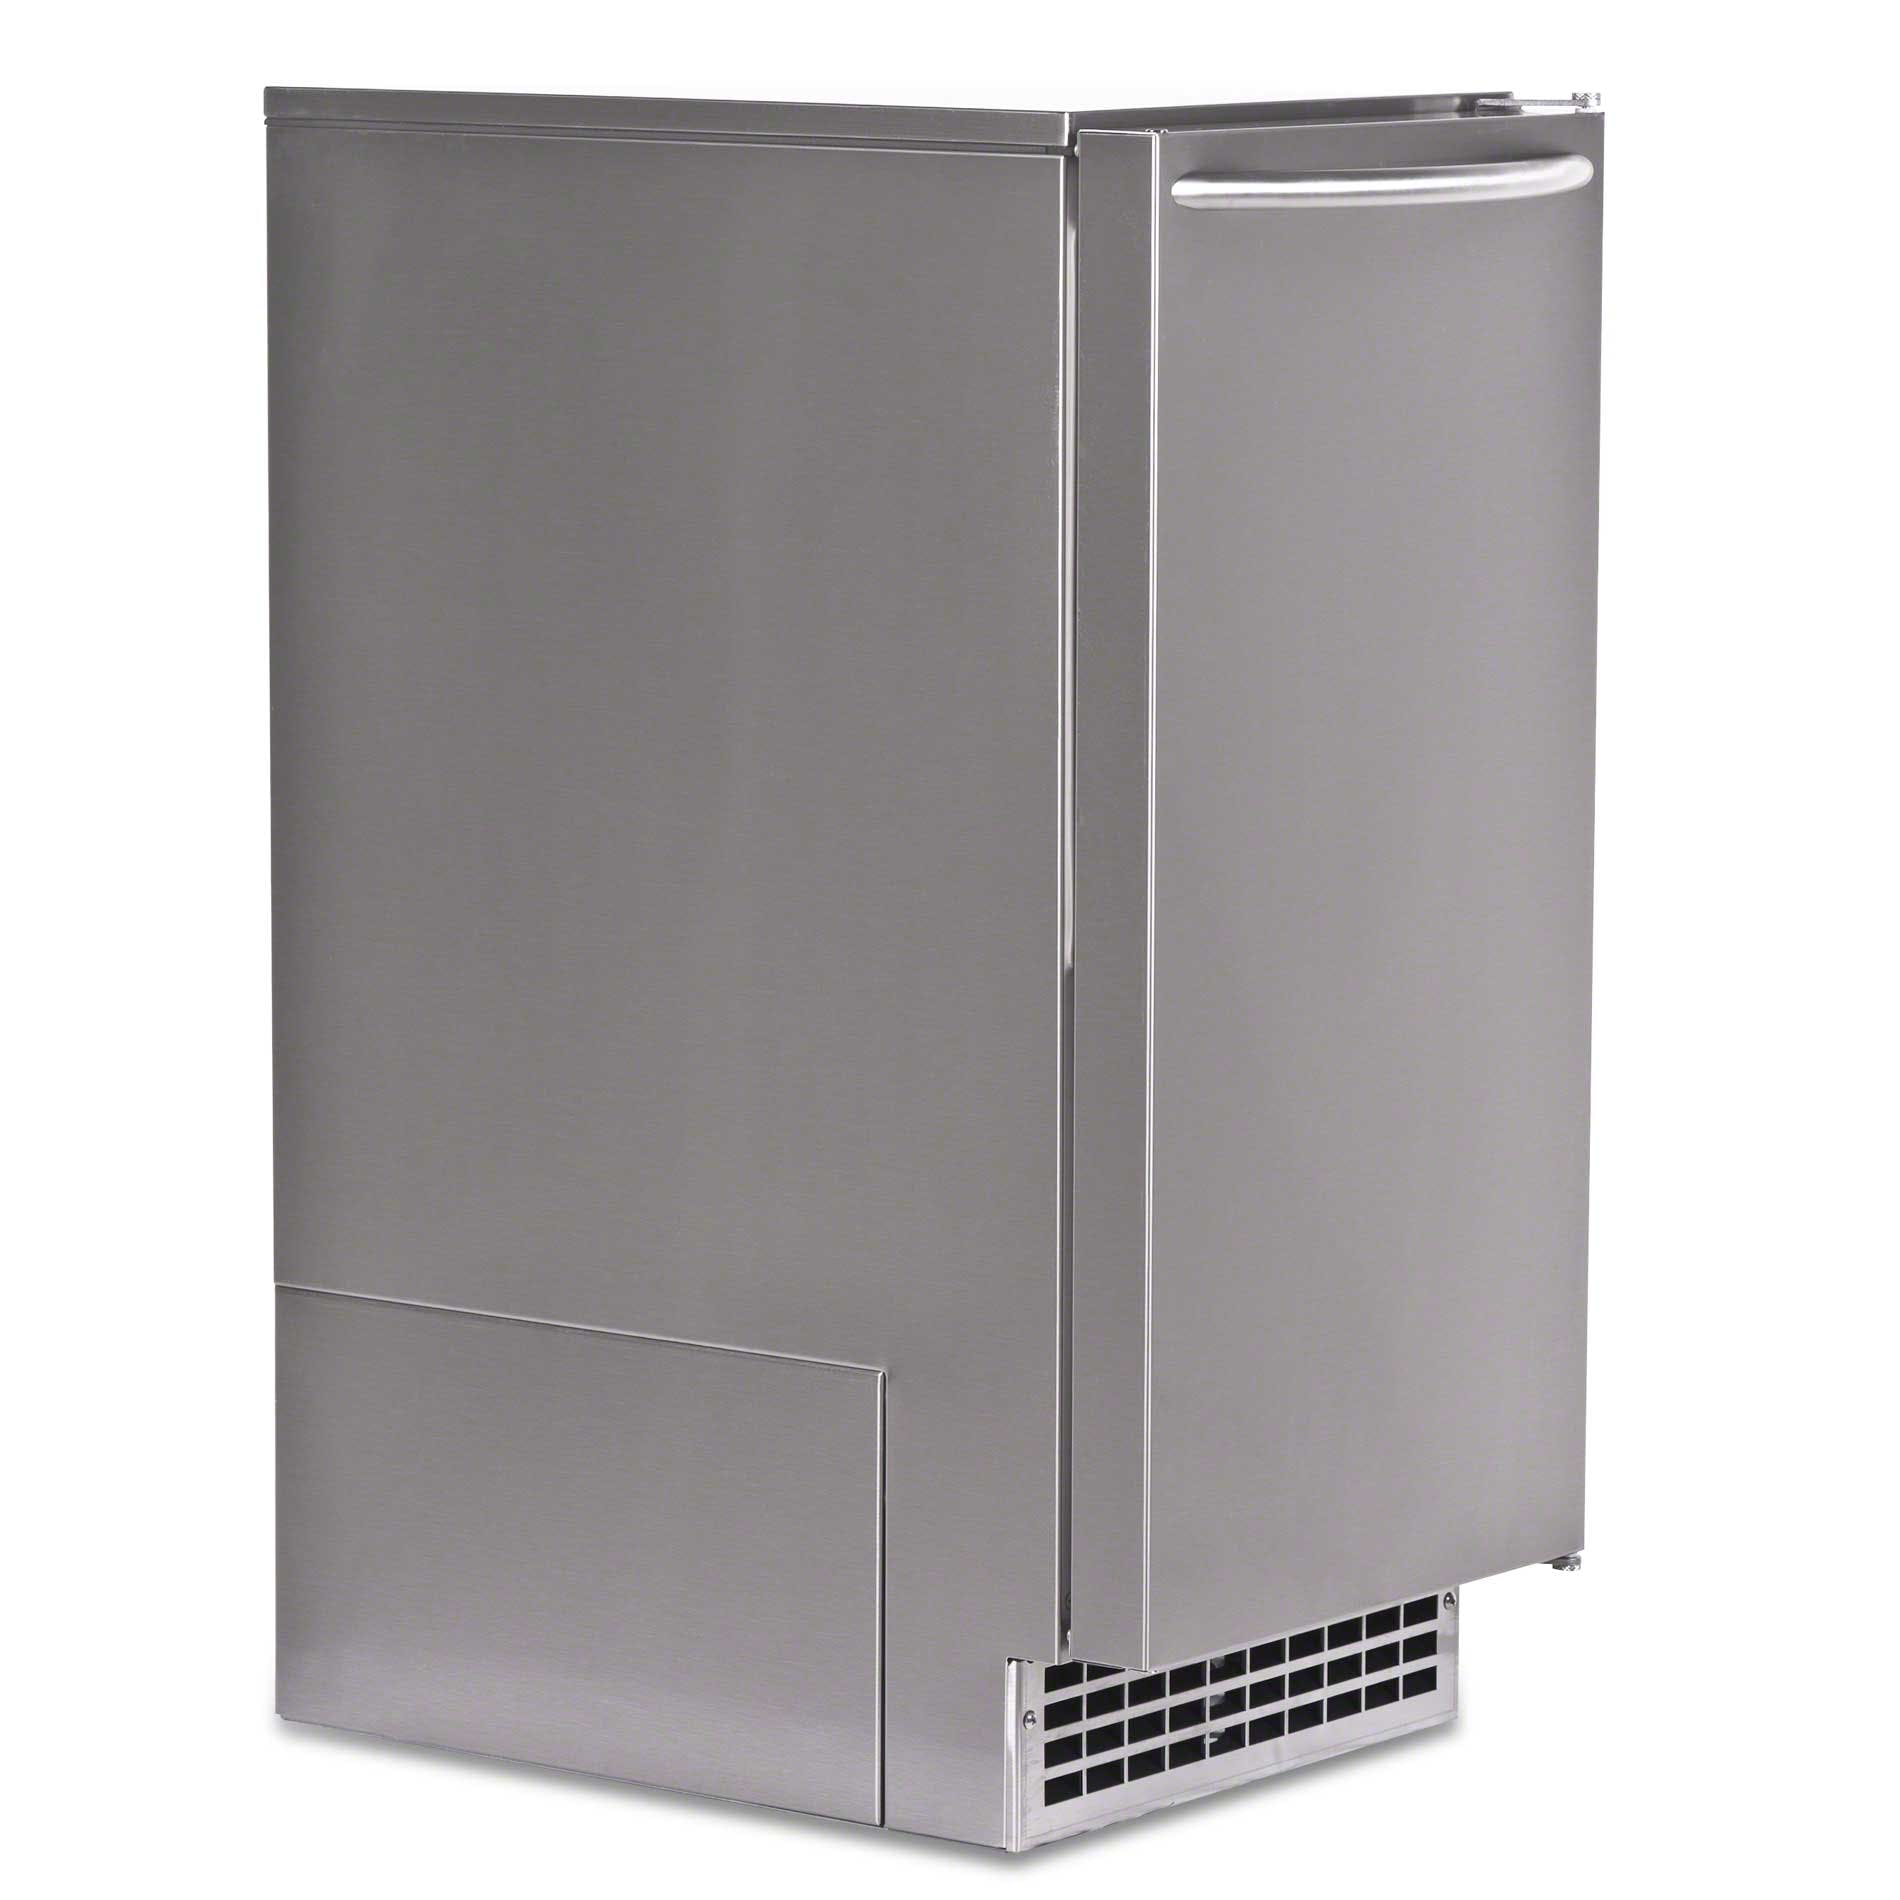 Ice-O-Matic - GEMU090 85 lb Self-Contained Pearl Ice Machine Ice machine sold by Food Service Warehouse